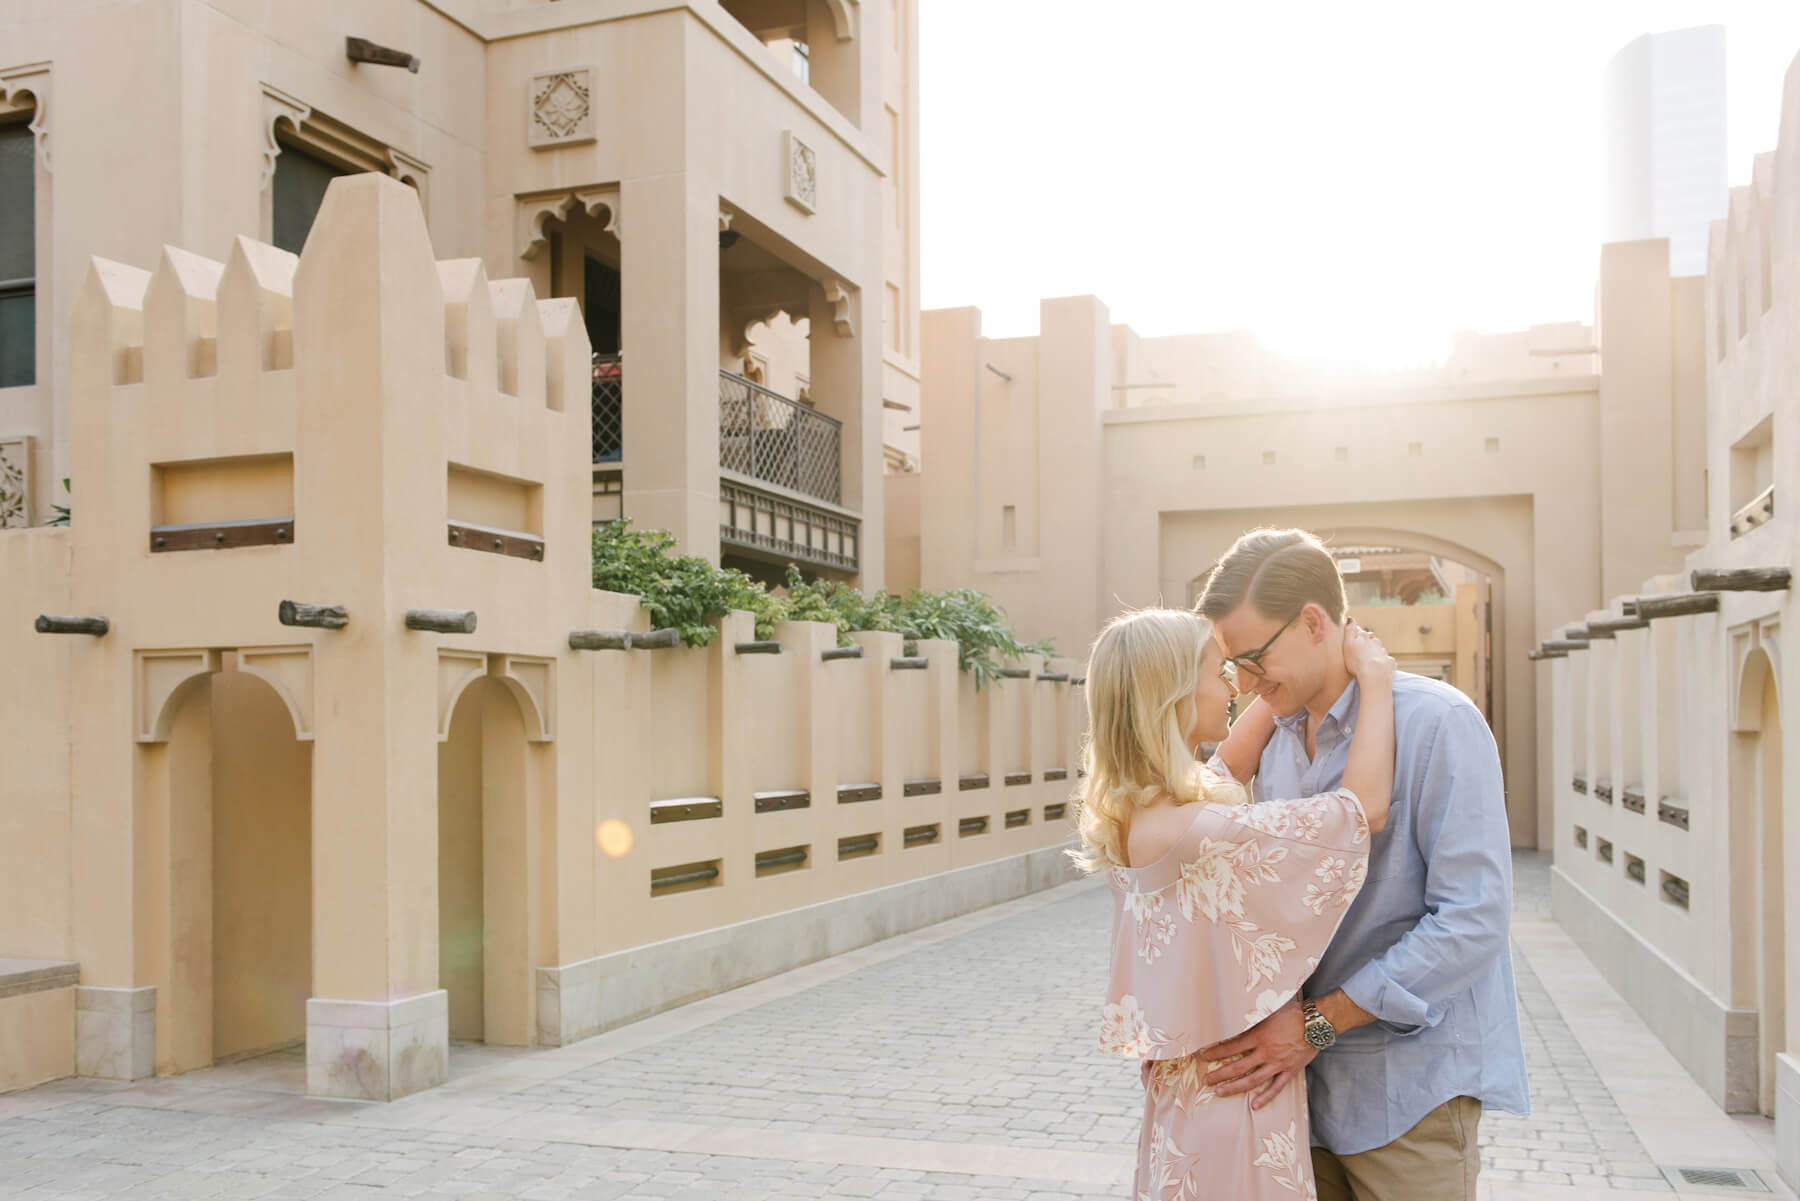 Couple hugging each other and smiling on a couples trip in Old Dubai, Dubai United Arab Emirates